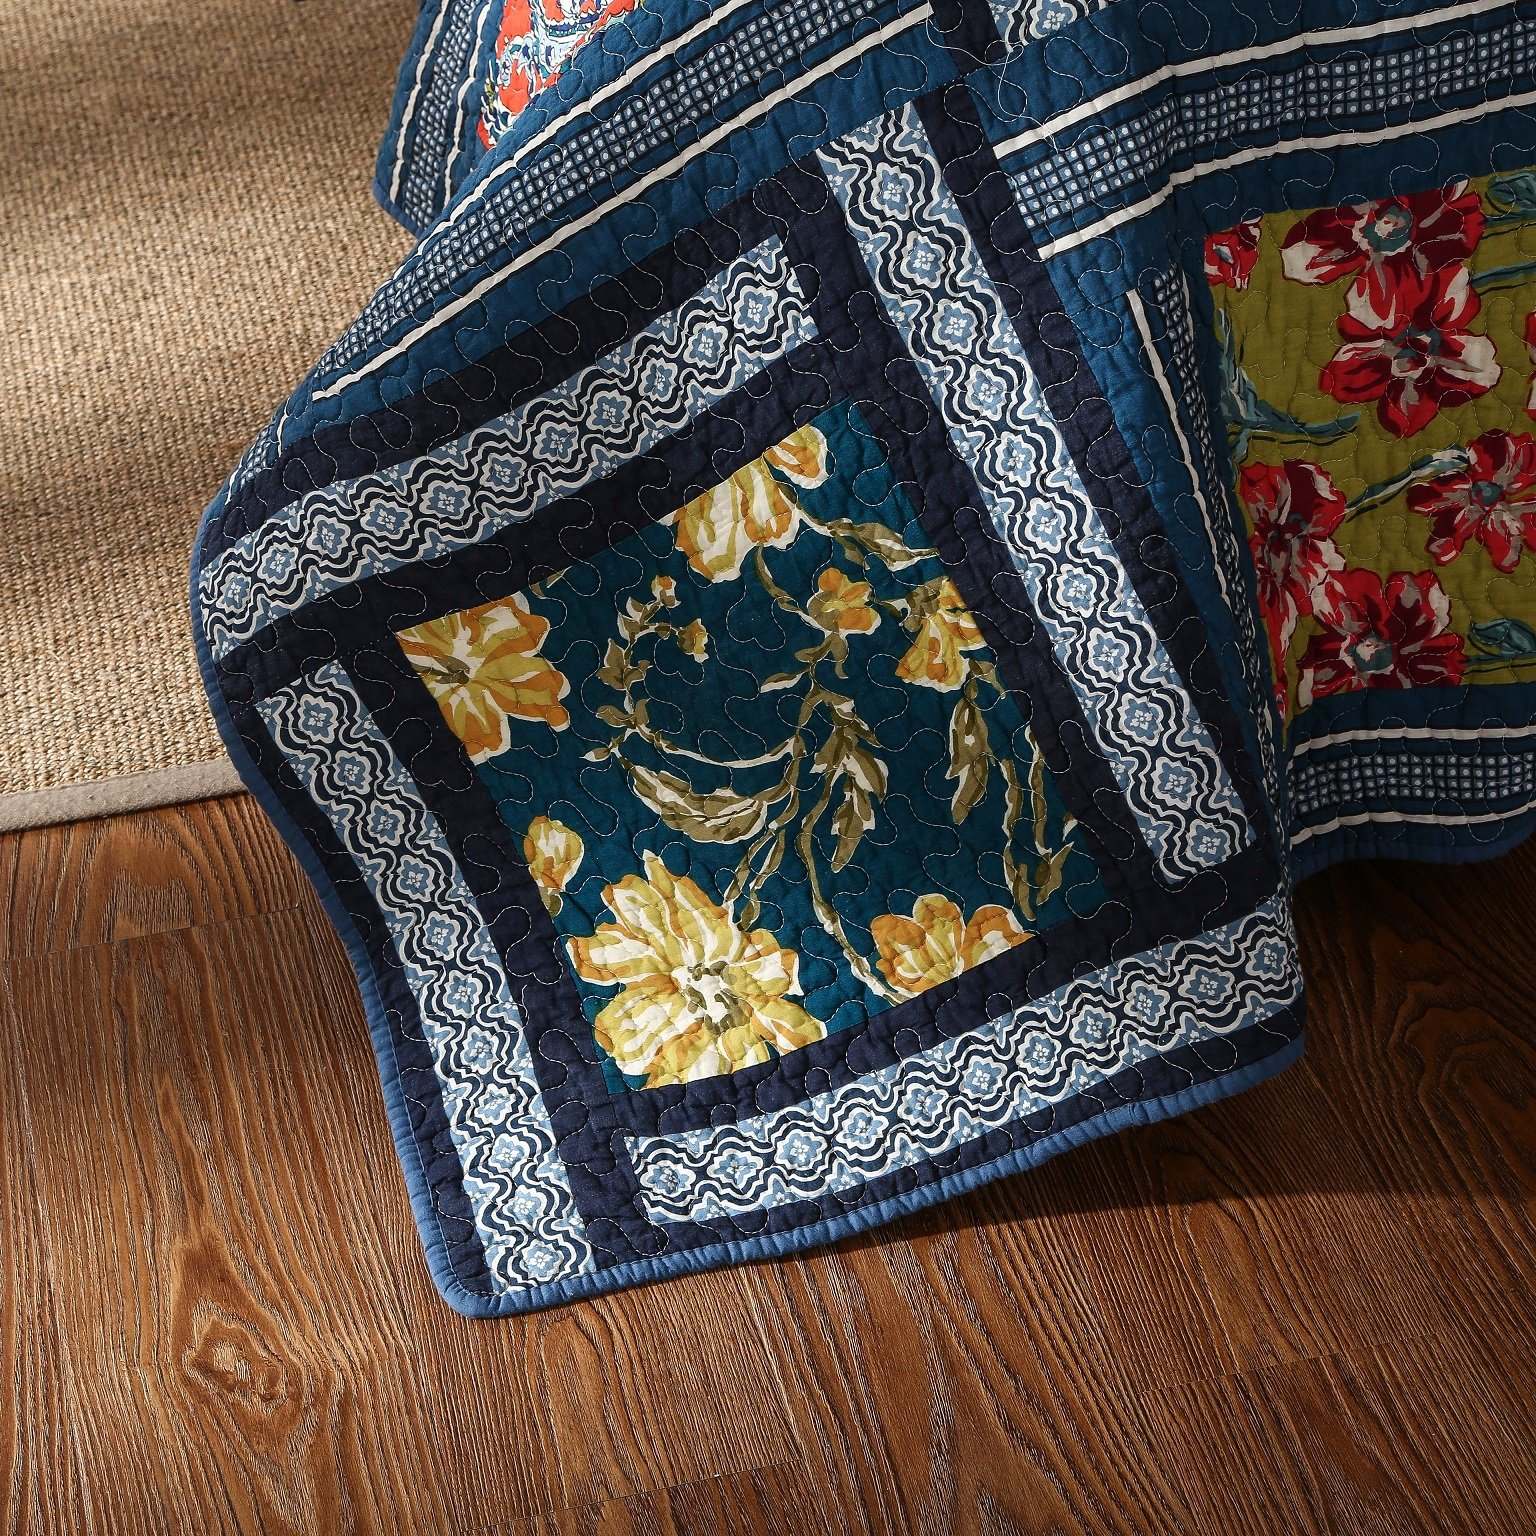 DaDa Bedding Bohemian Midnight Ocean Blue Sea Reversible Real Patchwork Quilted Bedspread Set - Dark Navy Floral Multi-Color Print - Queen - 3-Pieces by DaDa Bedding Collection (Image #6)